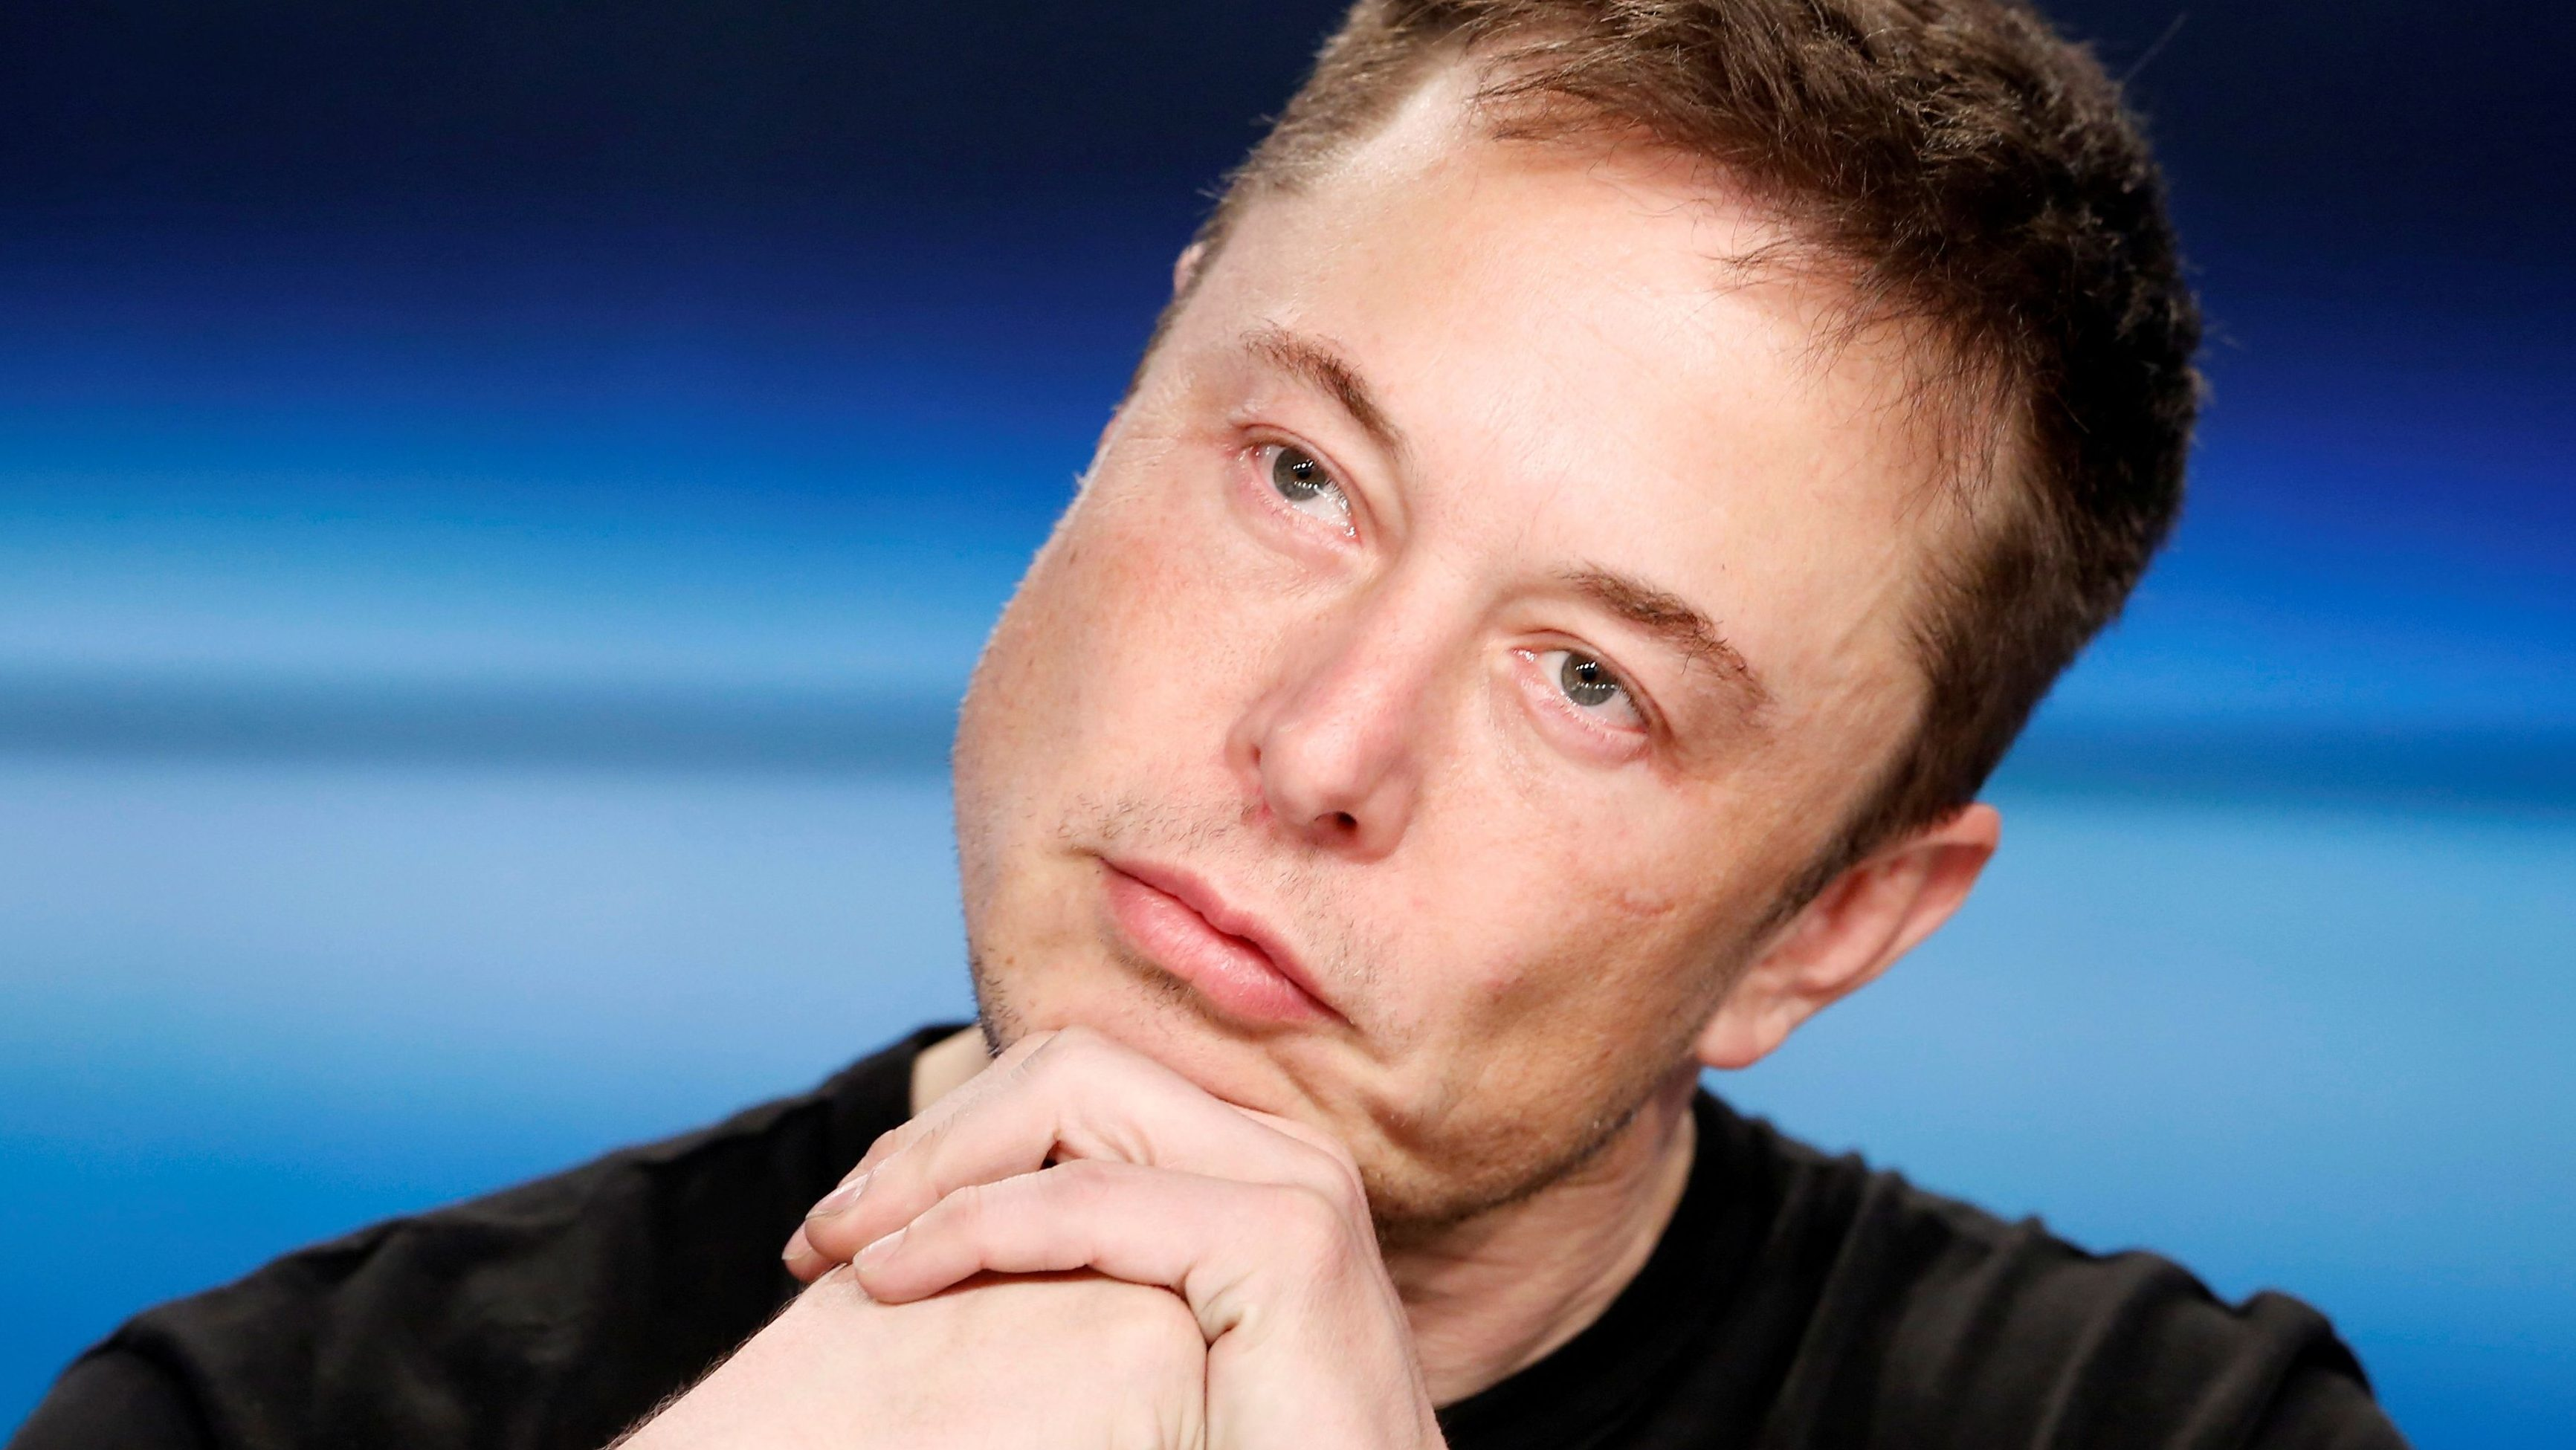 FILE PHOTO:    Elon Musk listens at a press conference following the first launch of a SpaceX Falcon Heavy rocket at the Kennedy Space Center in Cape Canaveral, Florida, U.S., February 6, 2018.  - RC1AD9ED5280